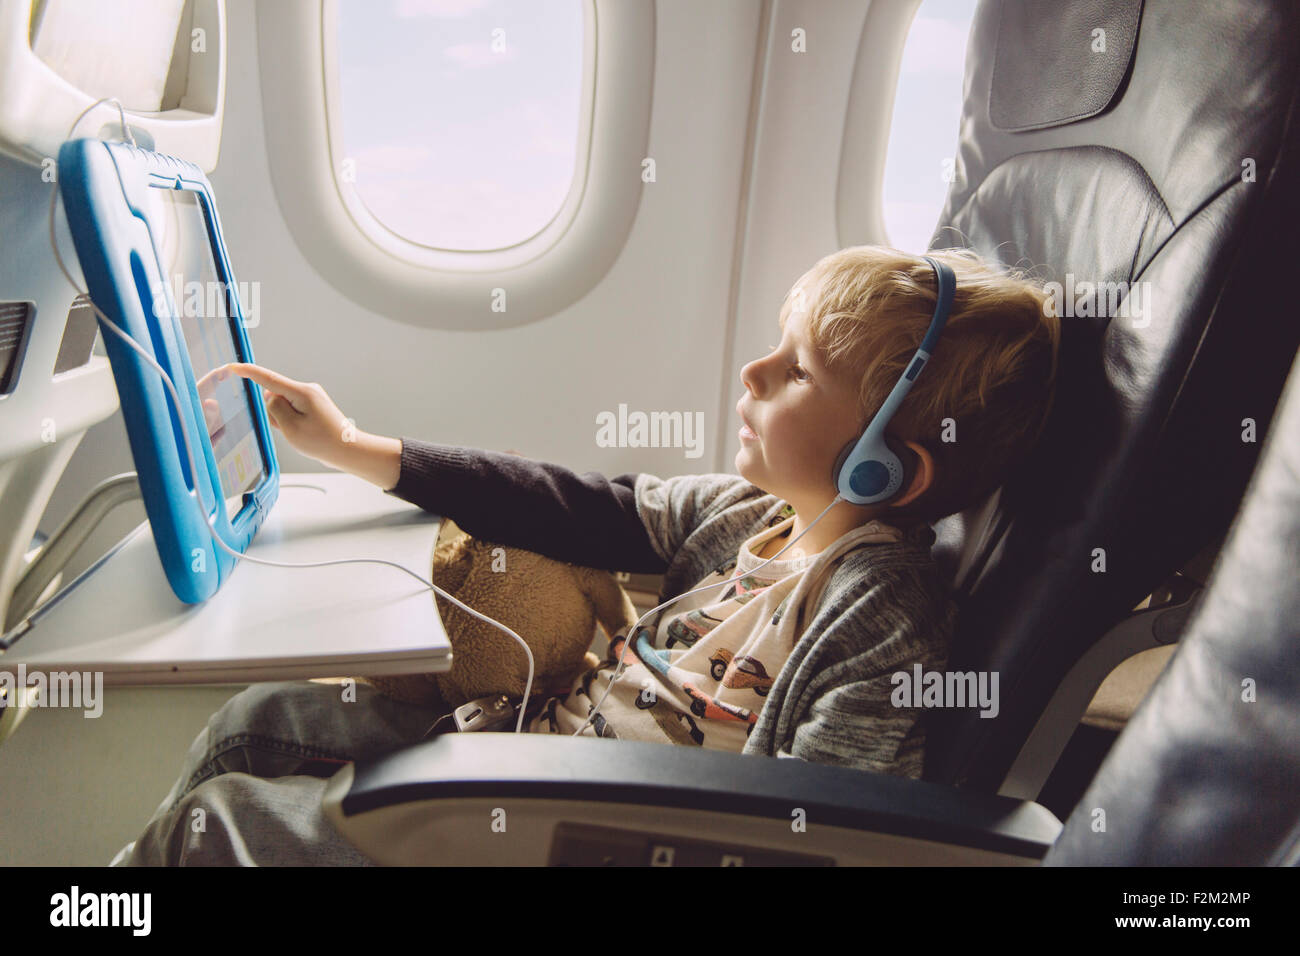 Little boy sitting on an airplane watching something on digital tablet - Stock Image